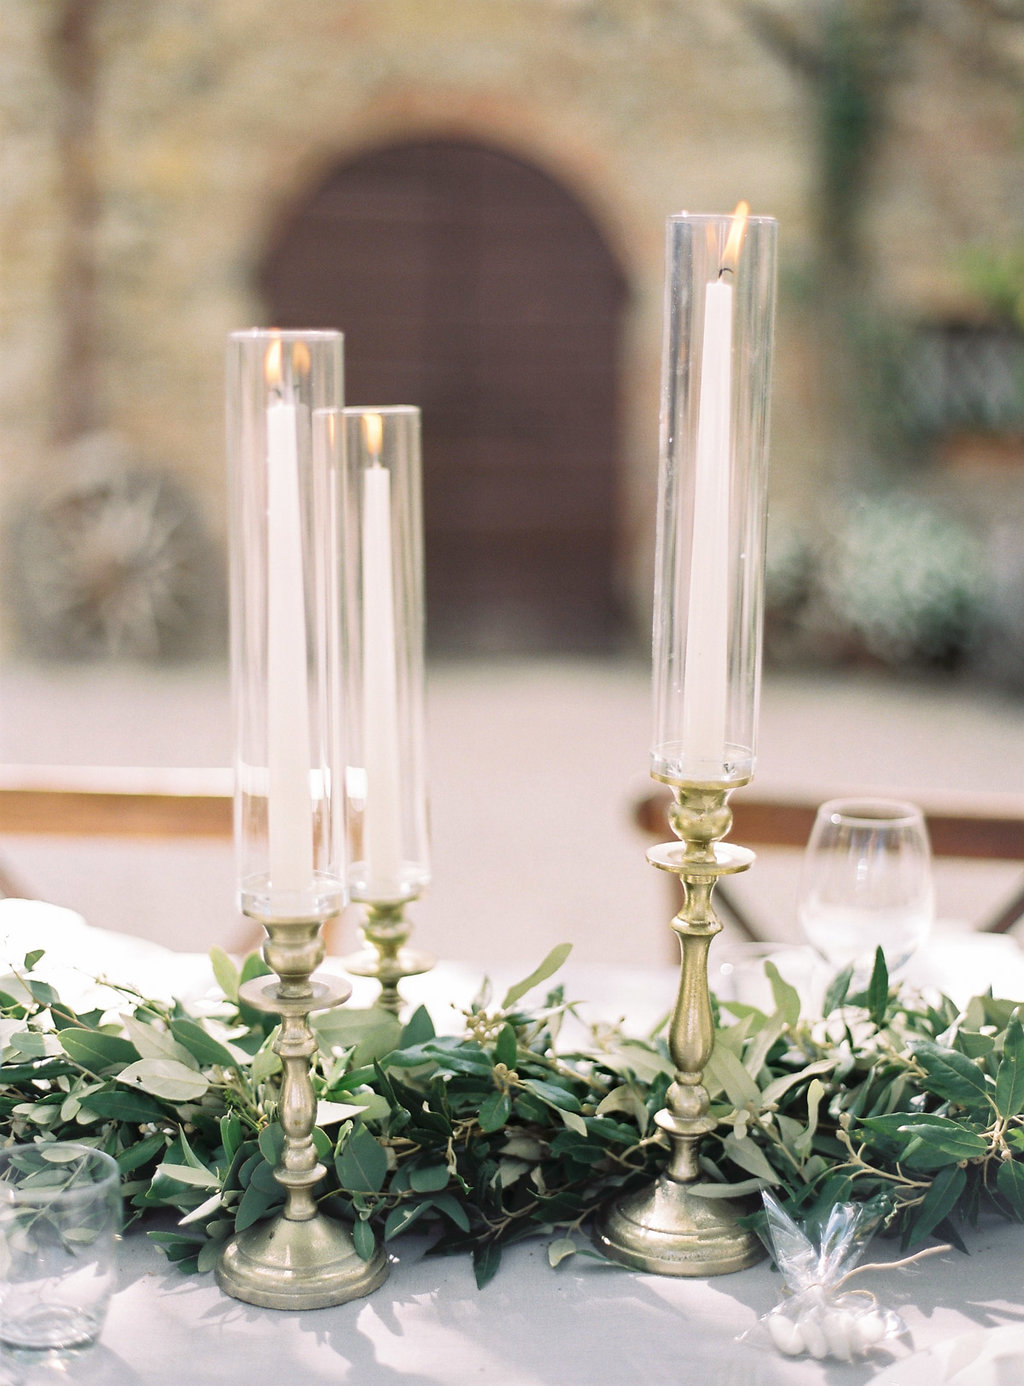 candlestick centerpieces - photo by Katie Grant Photography http://ruffledblog.com/classically-beautiful-intimate-wedding-in-tuscany